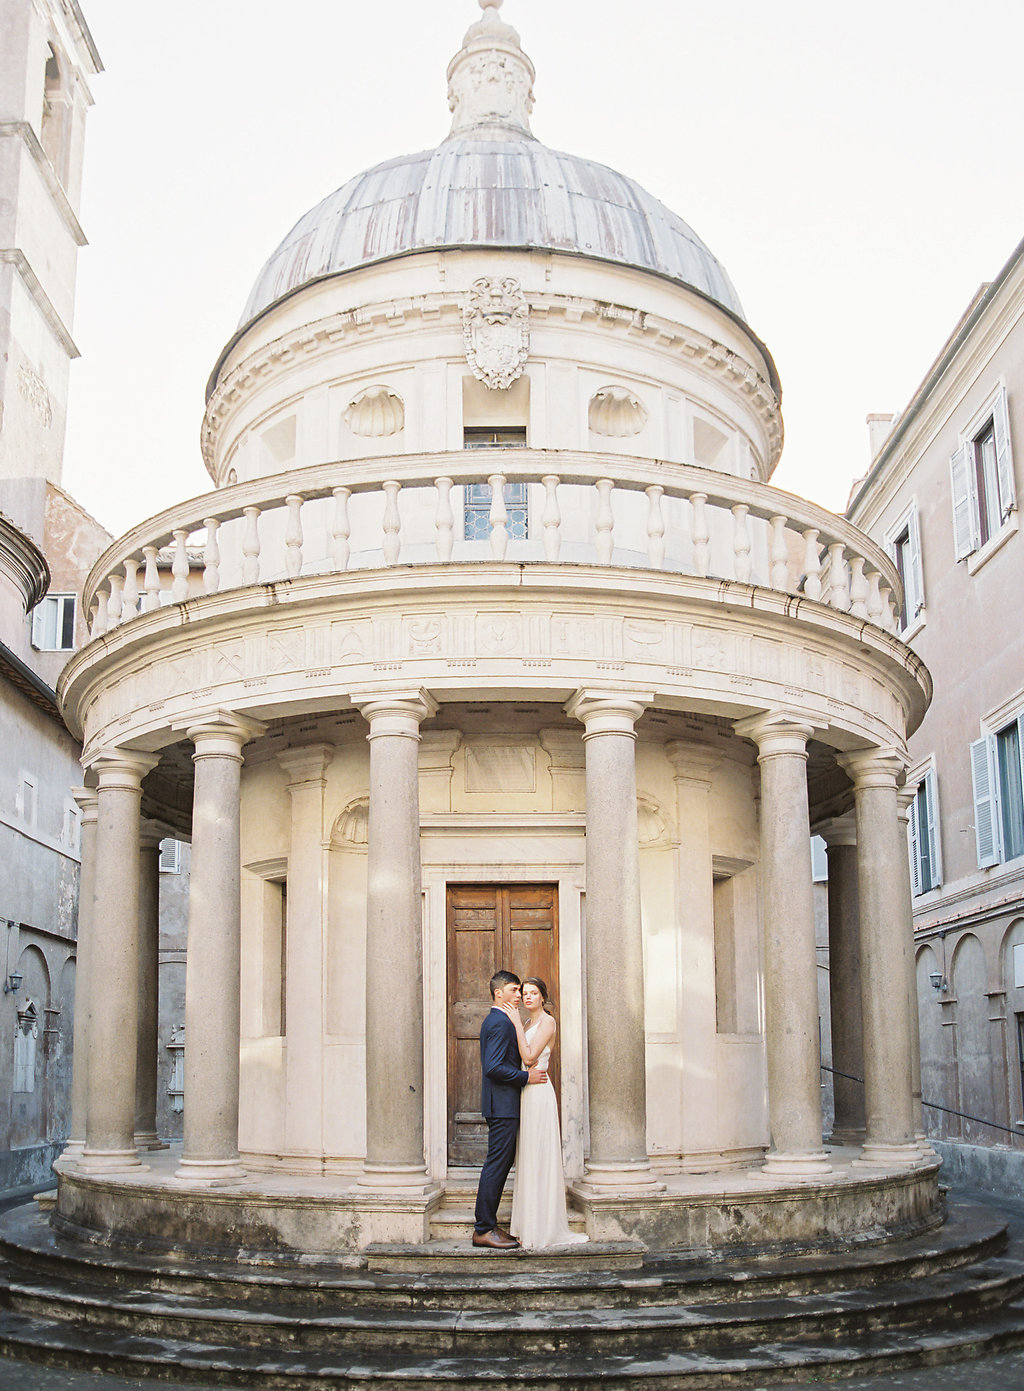 Vicki_Grafton_Photography_Rome_Italy_Wedding_Photographer_2017-95.jpg